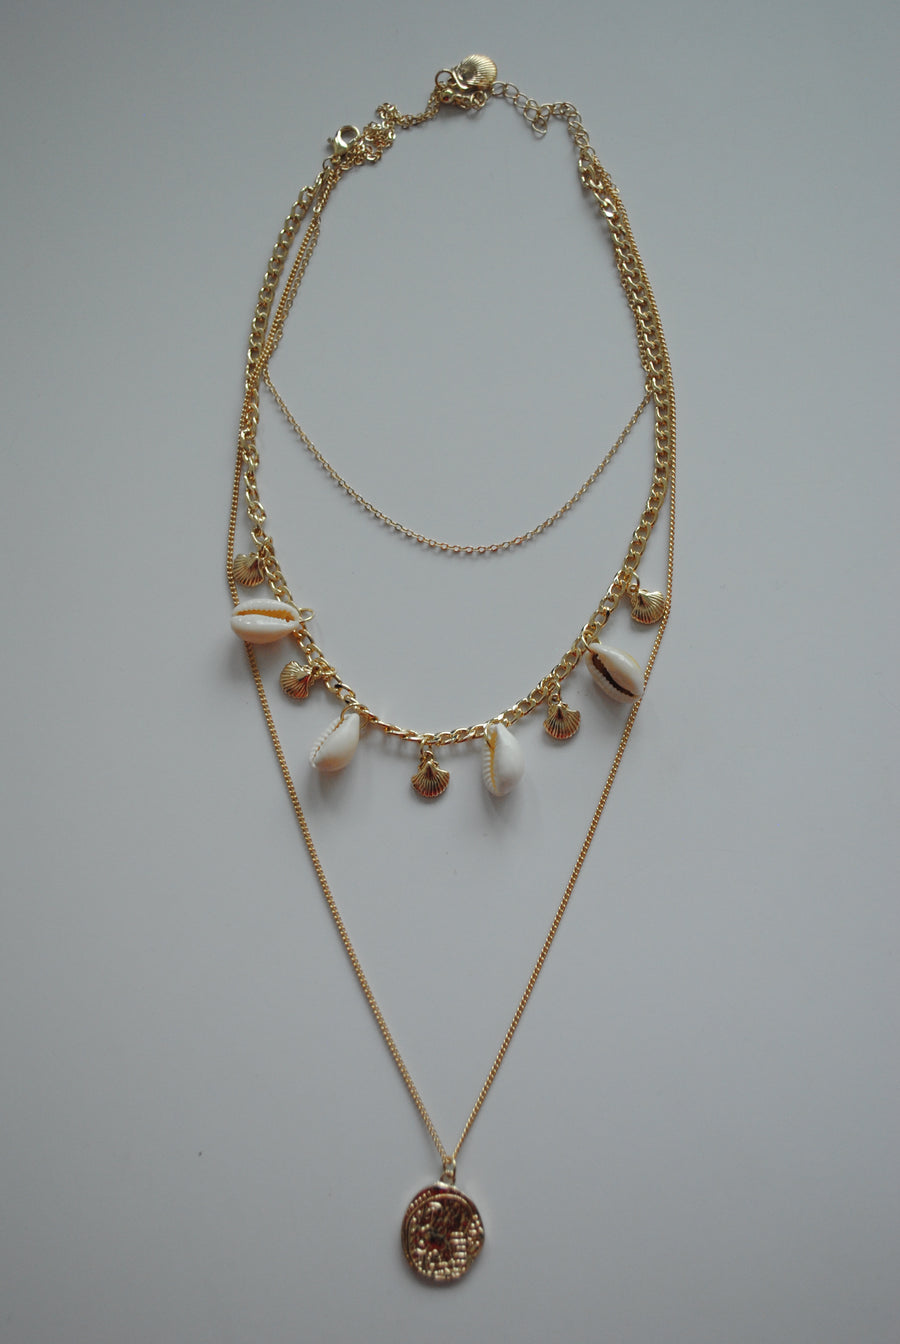 Mantra Pakistan Layered Shell & Chain Necklace | ACCESSORIES